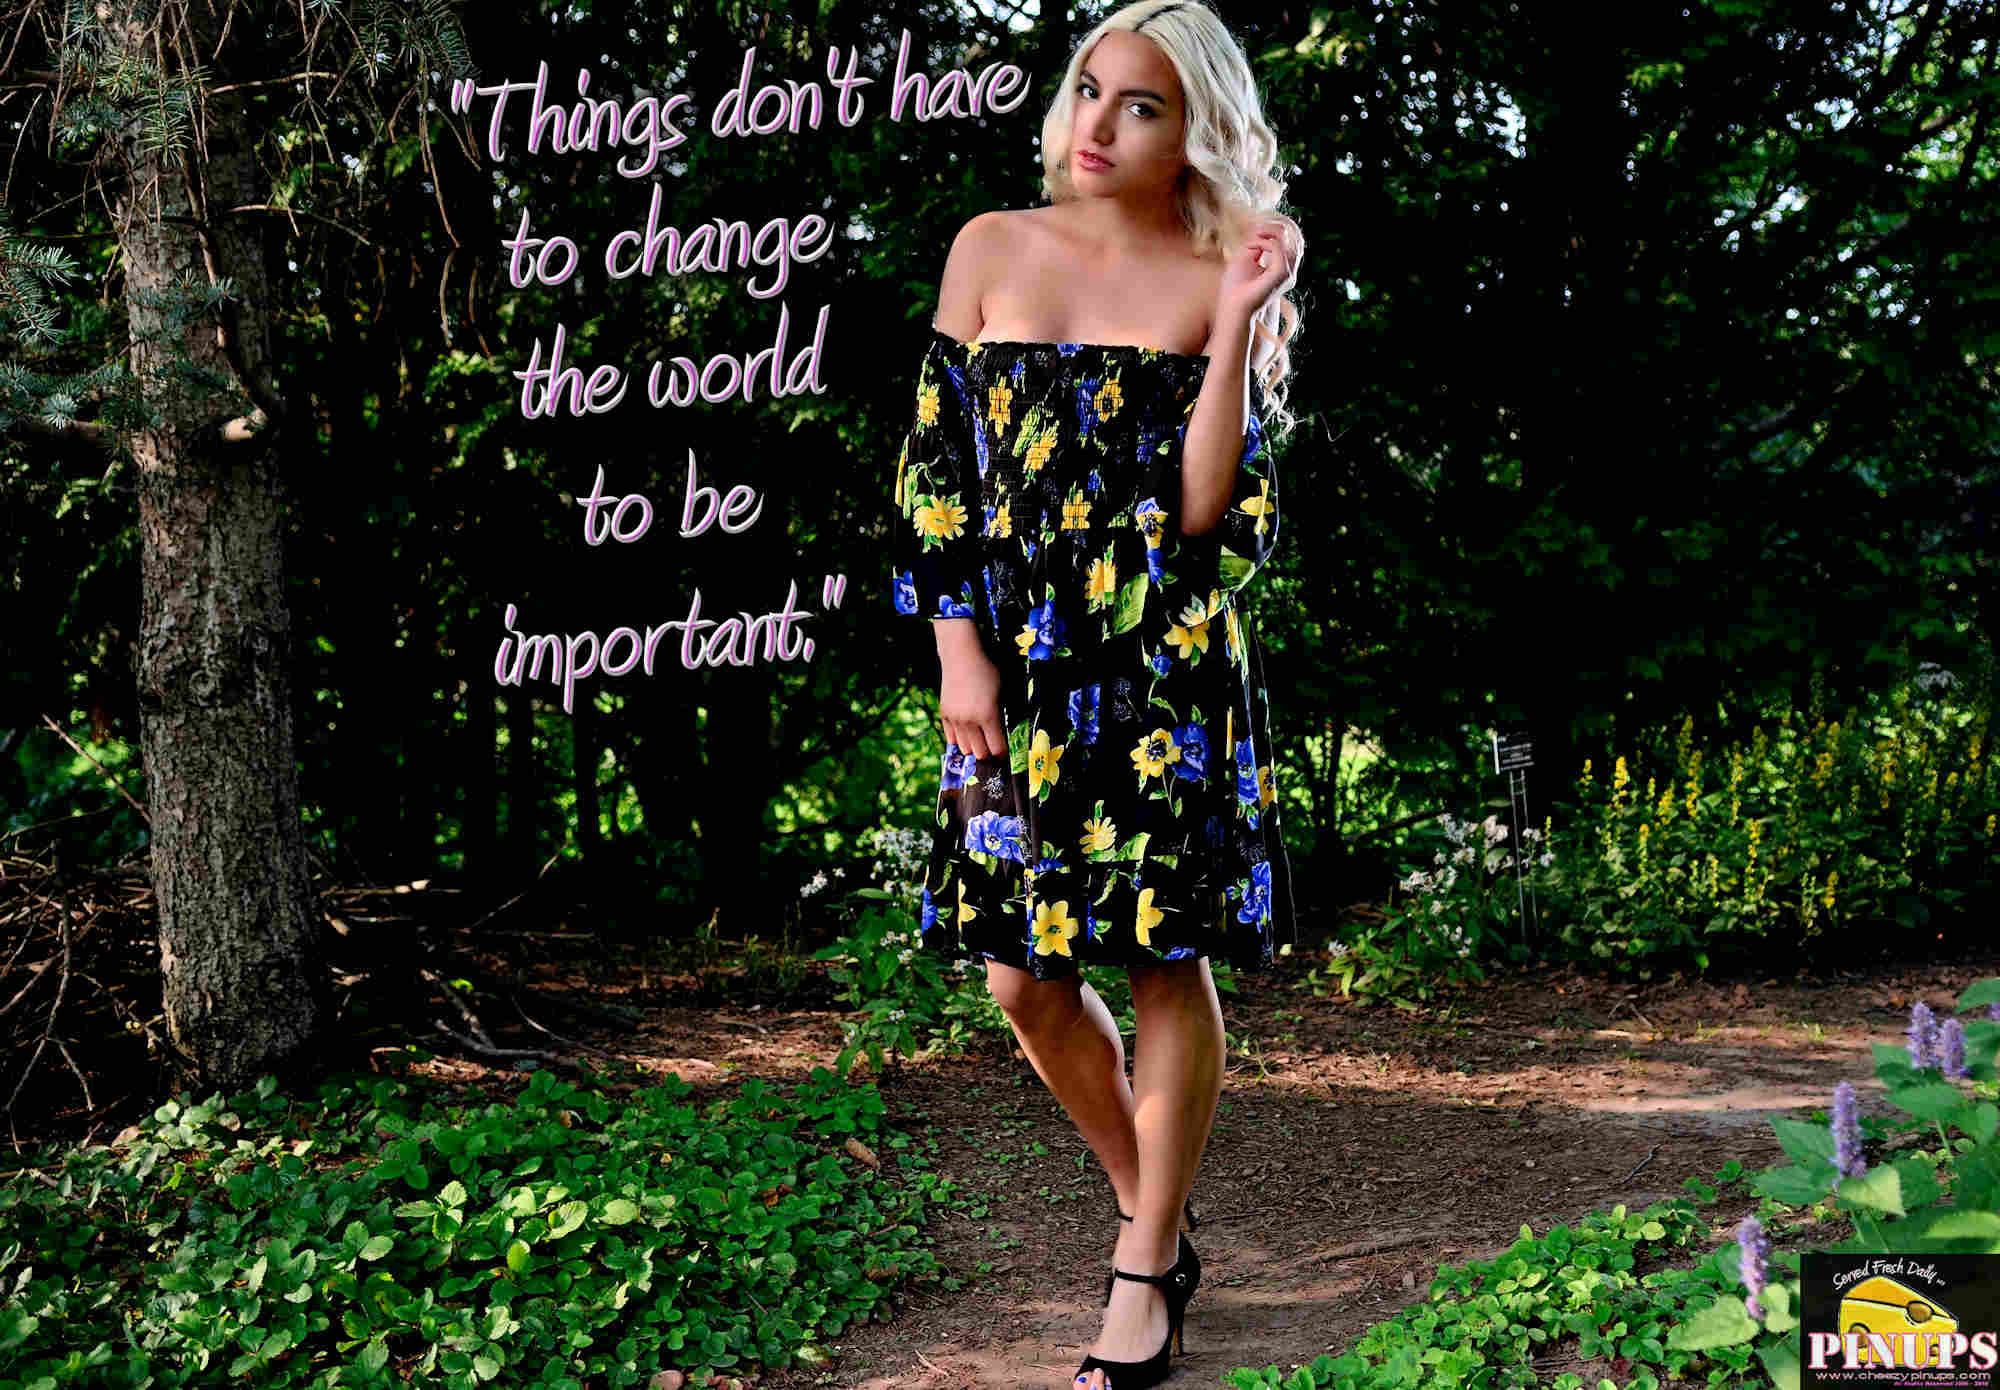 """Cheezy Pinup - February 24, 2018   """"Things don't have to change the world to be important."""" - Steve Jobs Model: @ShelbyDelFranko"""